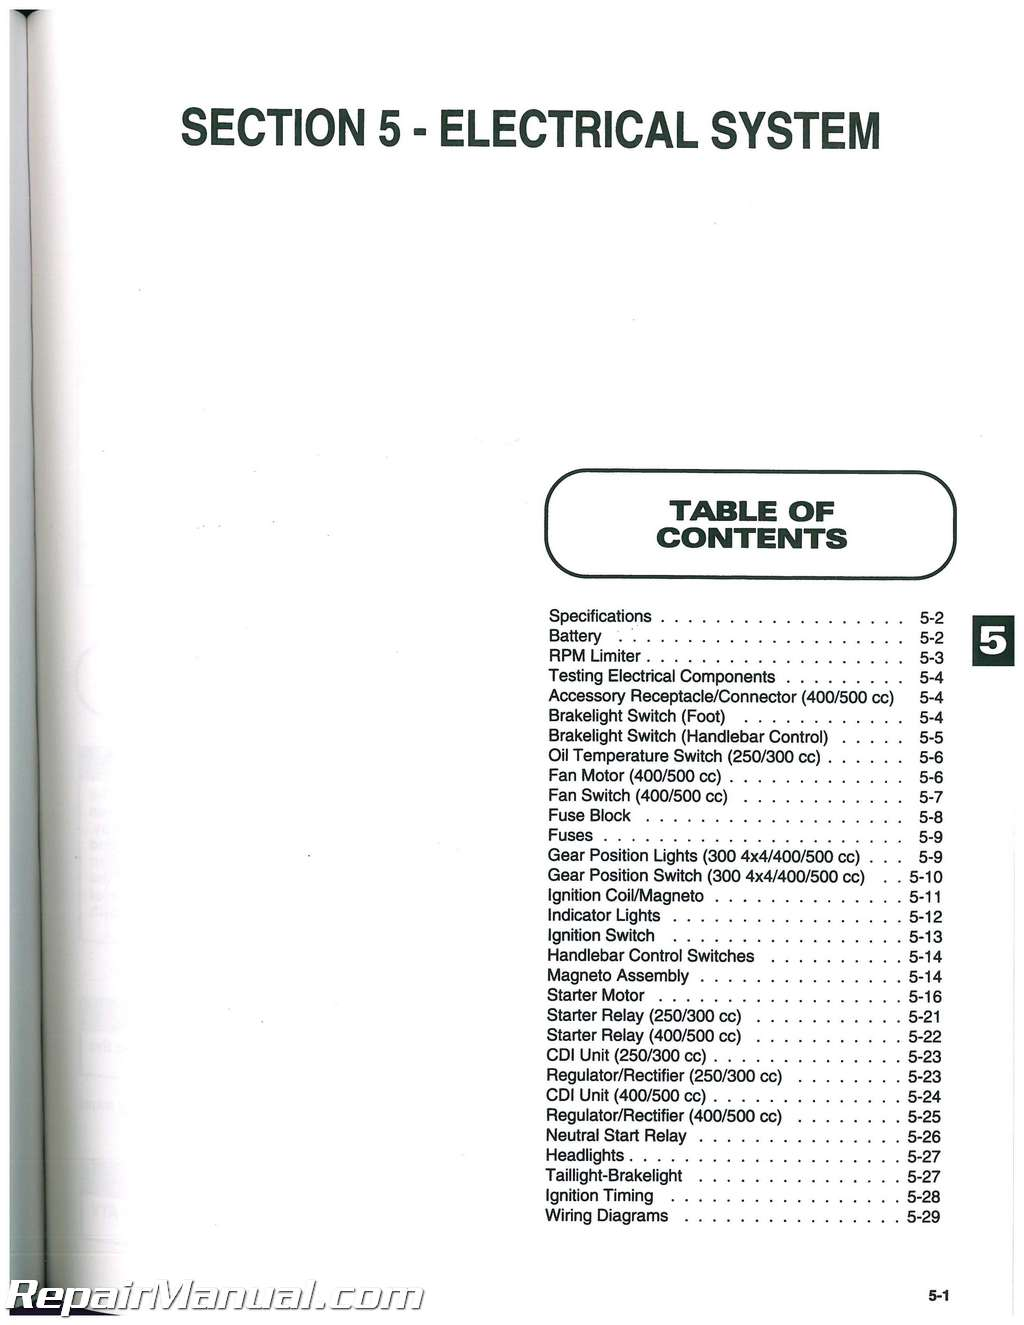 1999 Arctic Cat 400 Owners Manual Today Guide Trends Sample 370 Wiring Diagram 500 4x4 300 2x4 250 2003 Problems